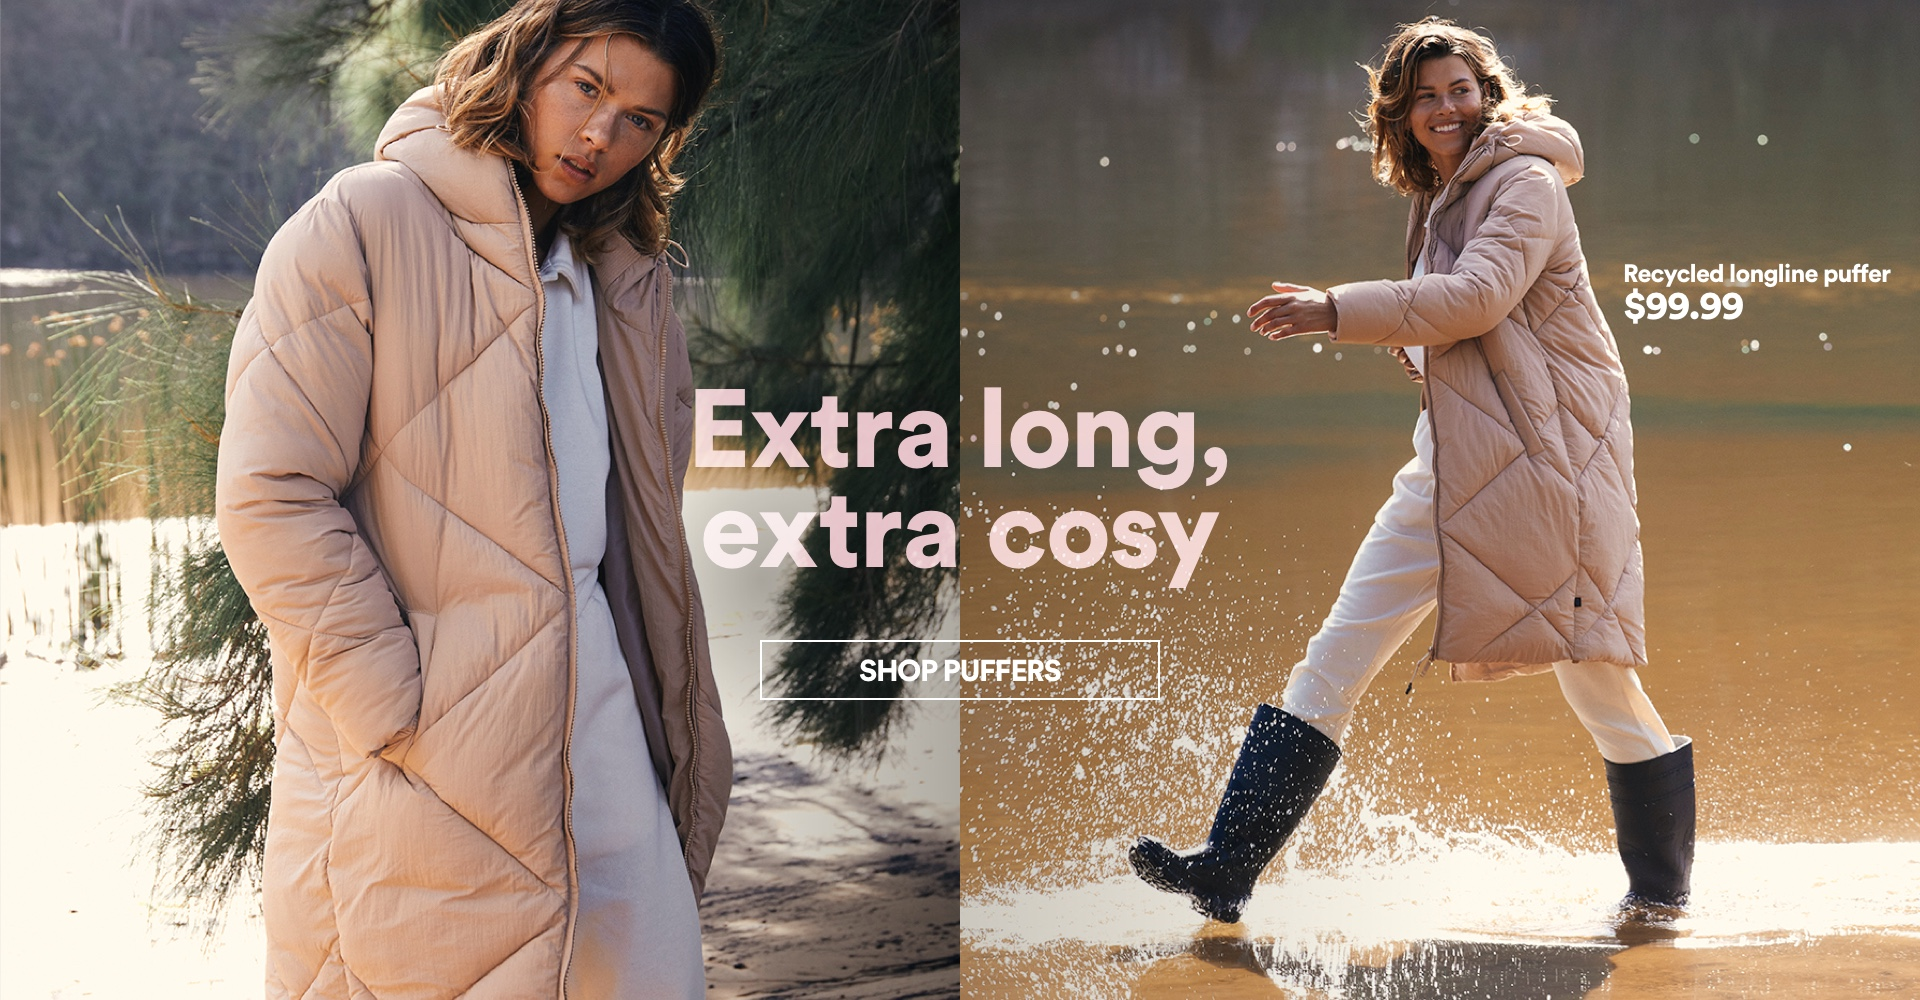 Extra Long, Extra Cosy. Shop Puffers